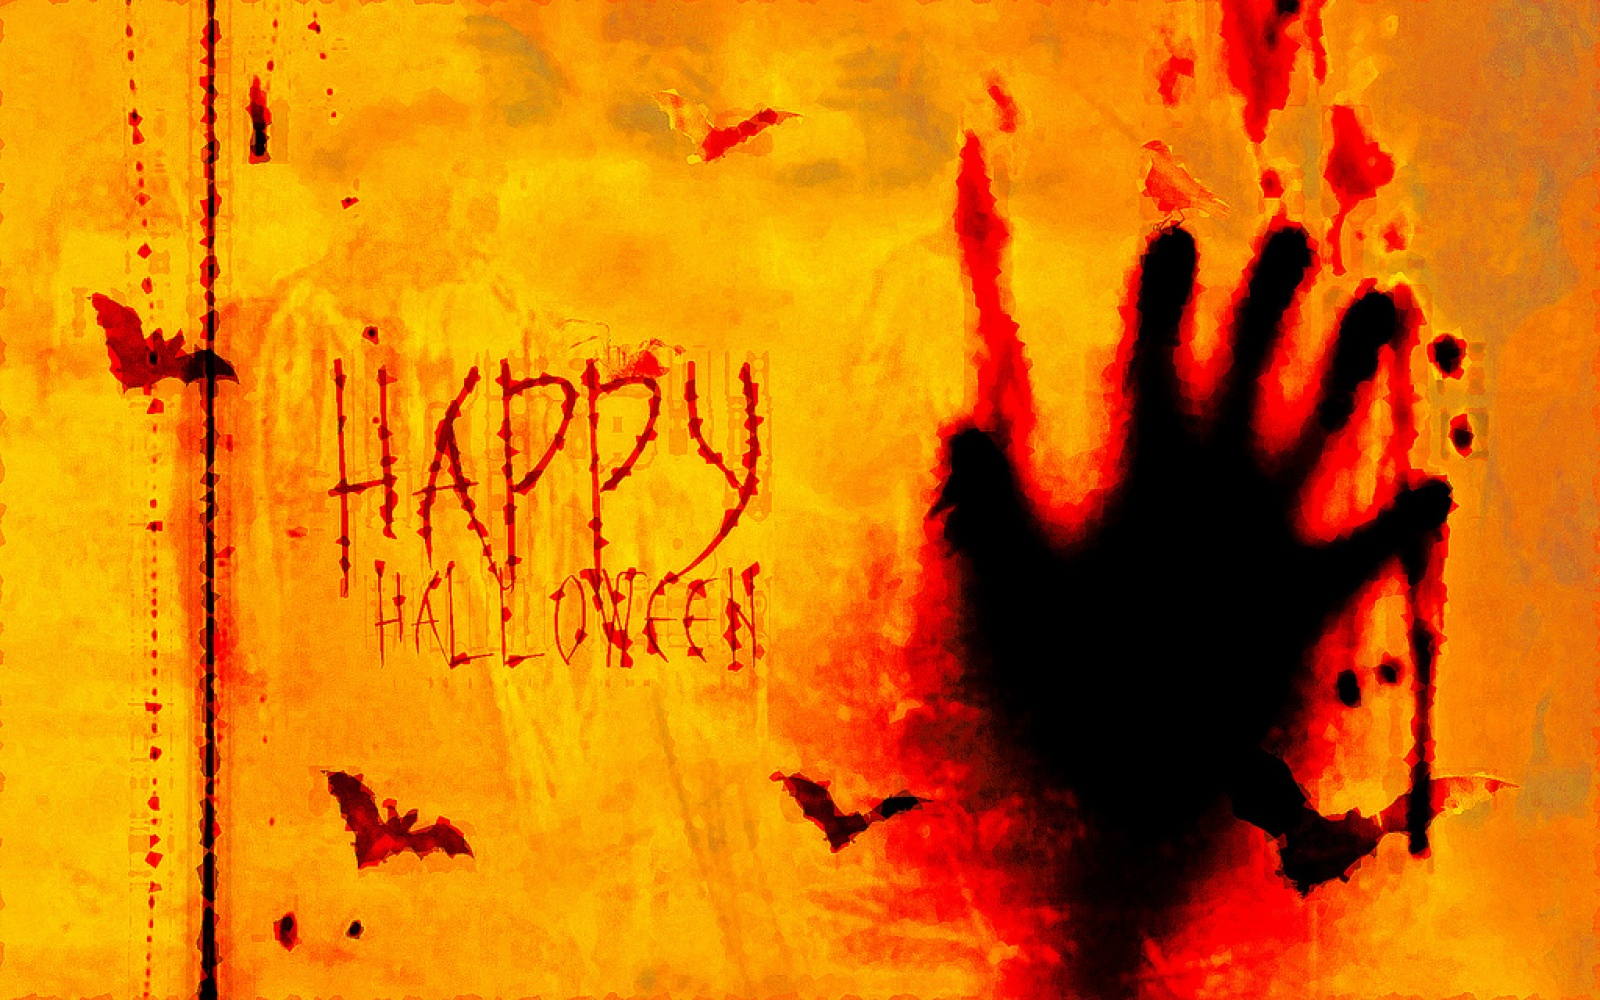 wallpaper halloween 3d desktop wallpaper 3 filesize 1024x768 95k 1600x1000